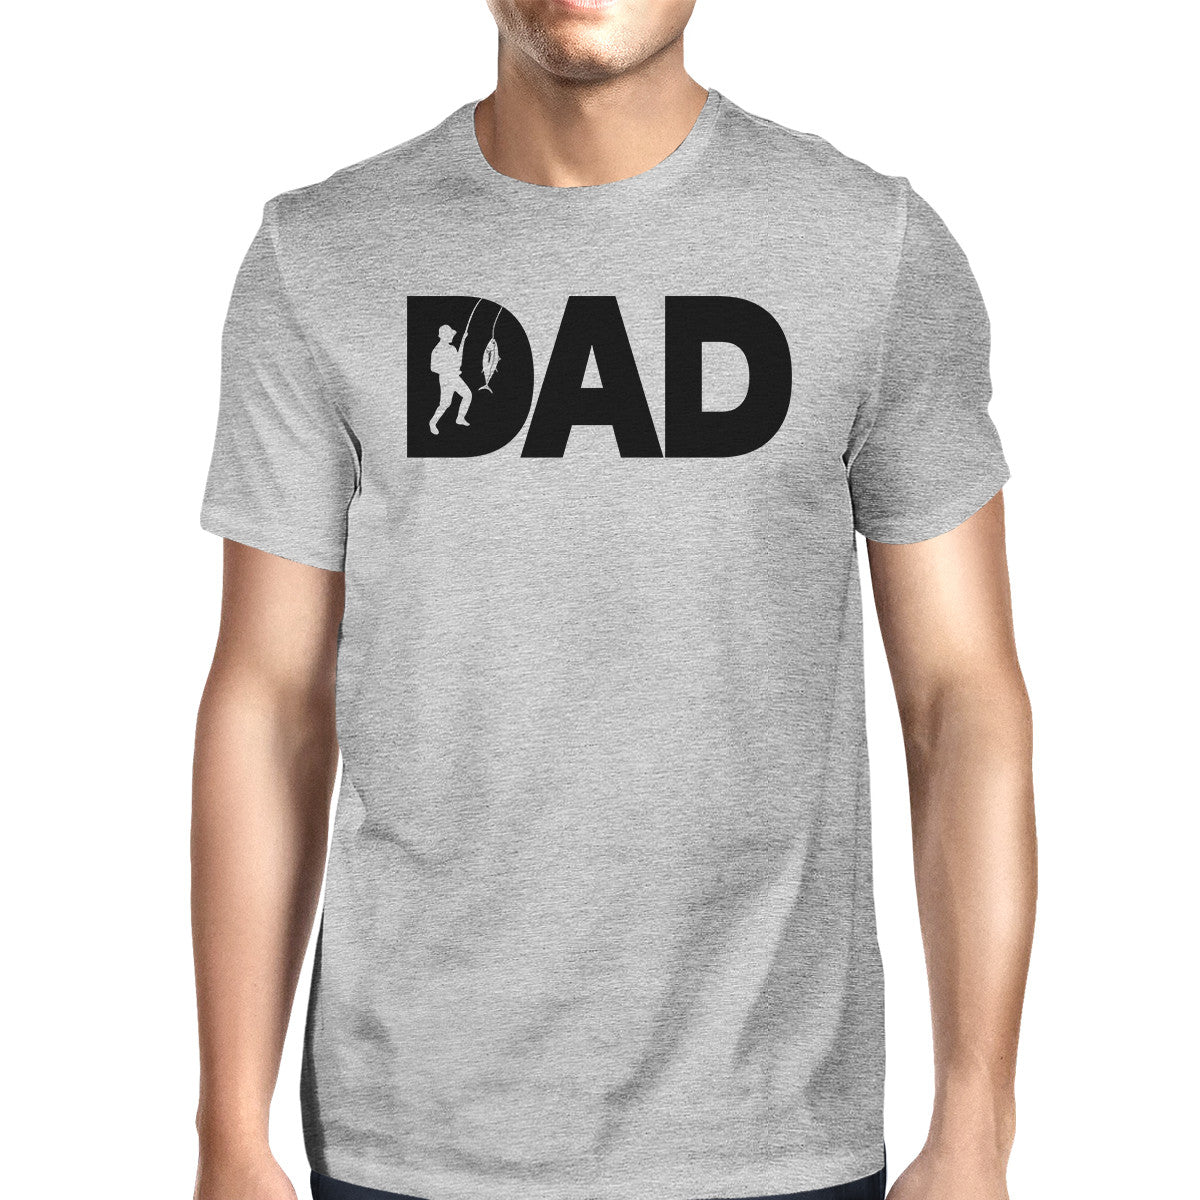 bddcbb194 Dad Fish Mens Gray Tee Shirt Funny Design Top For Fishing Lovers ...